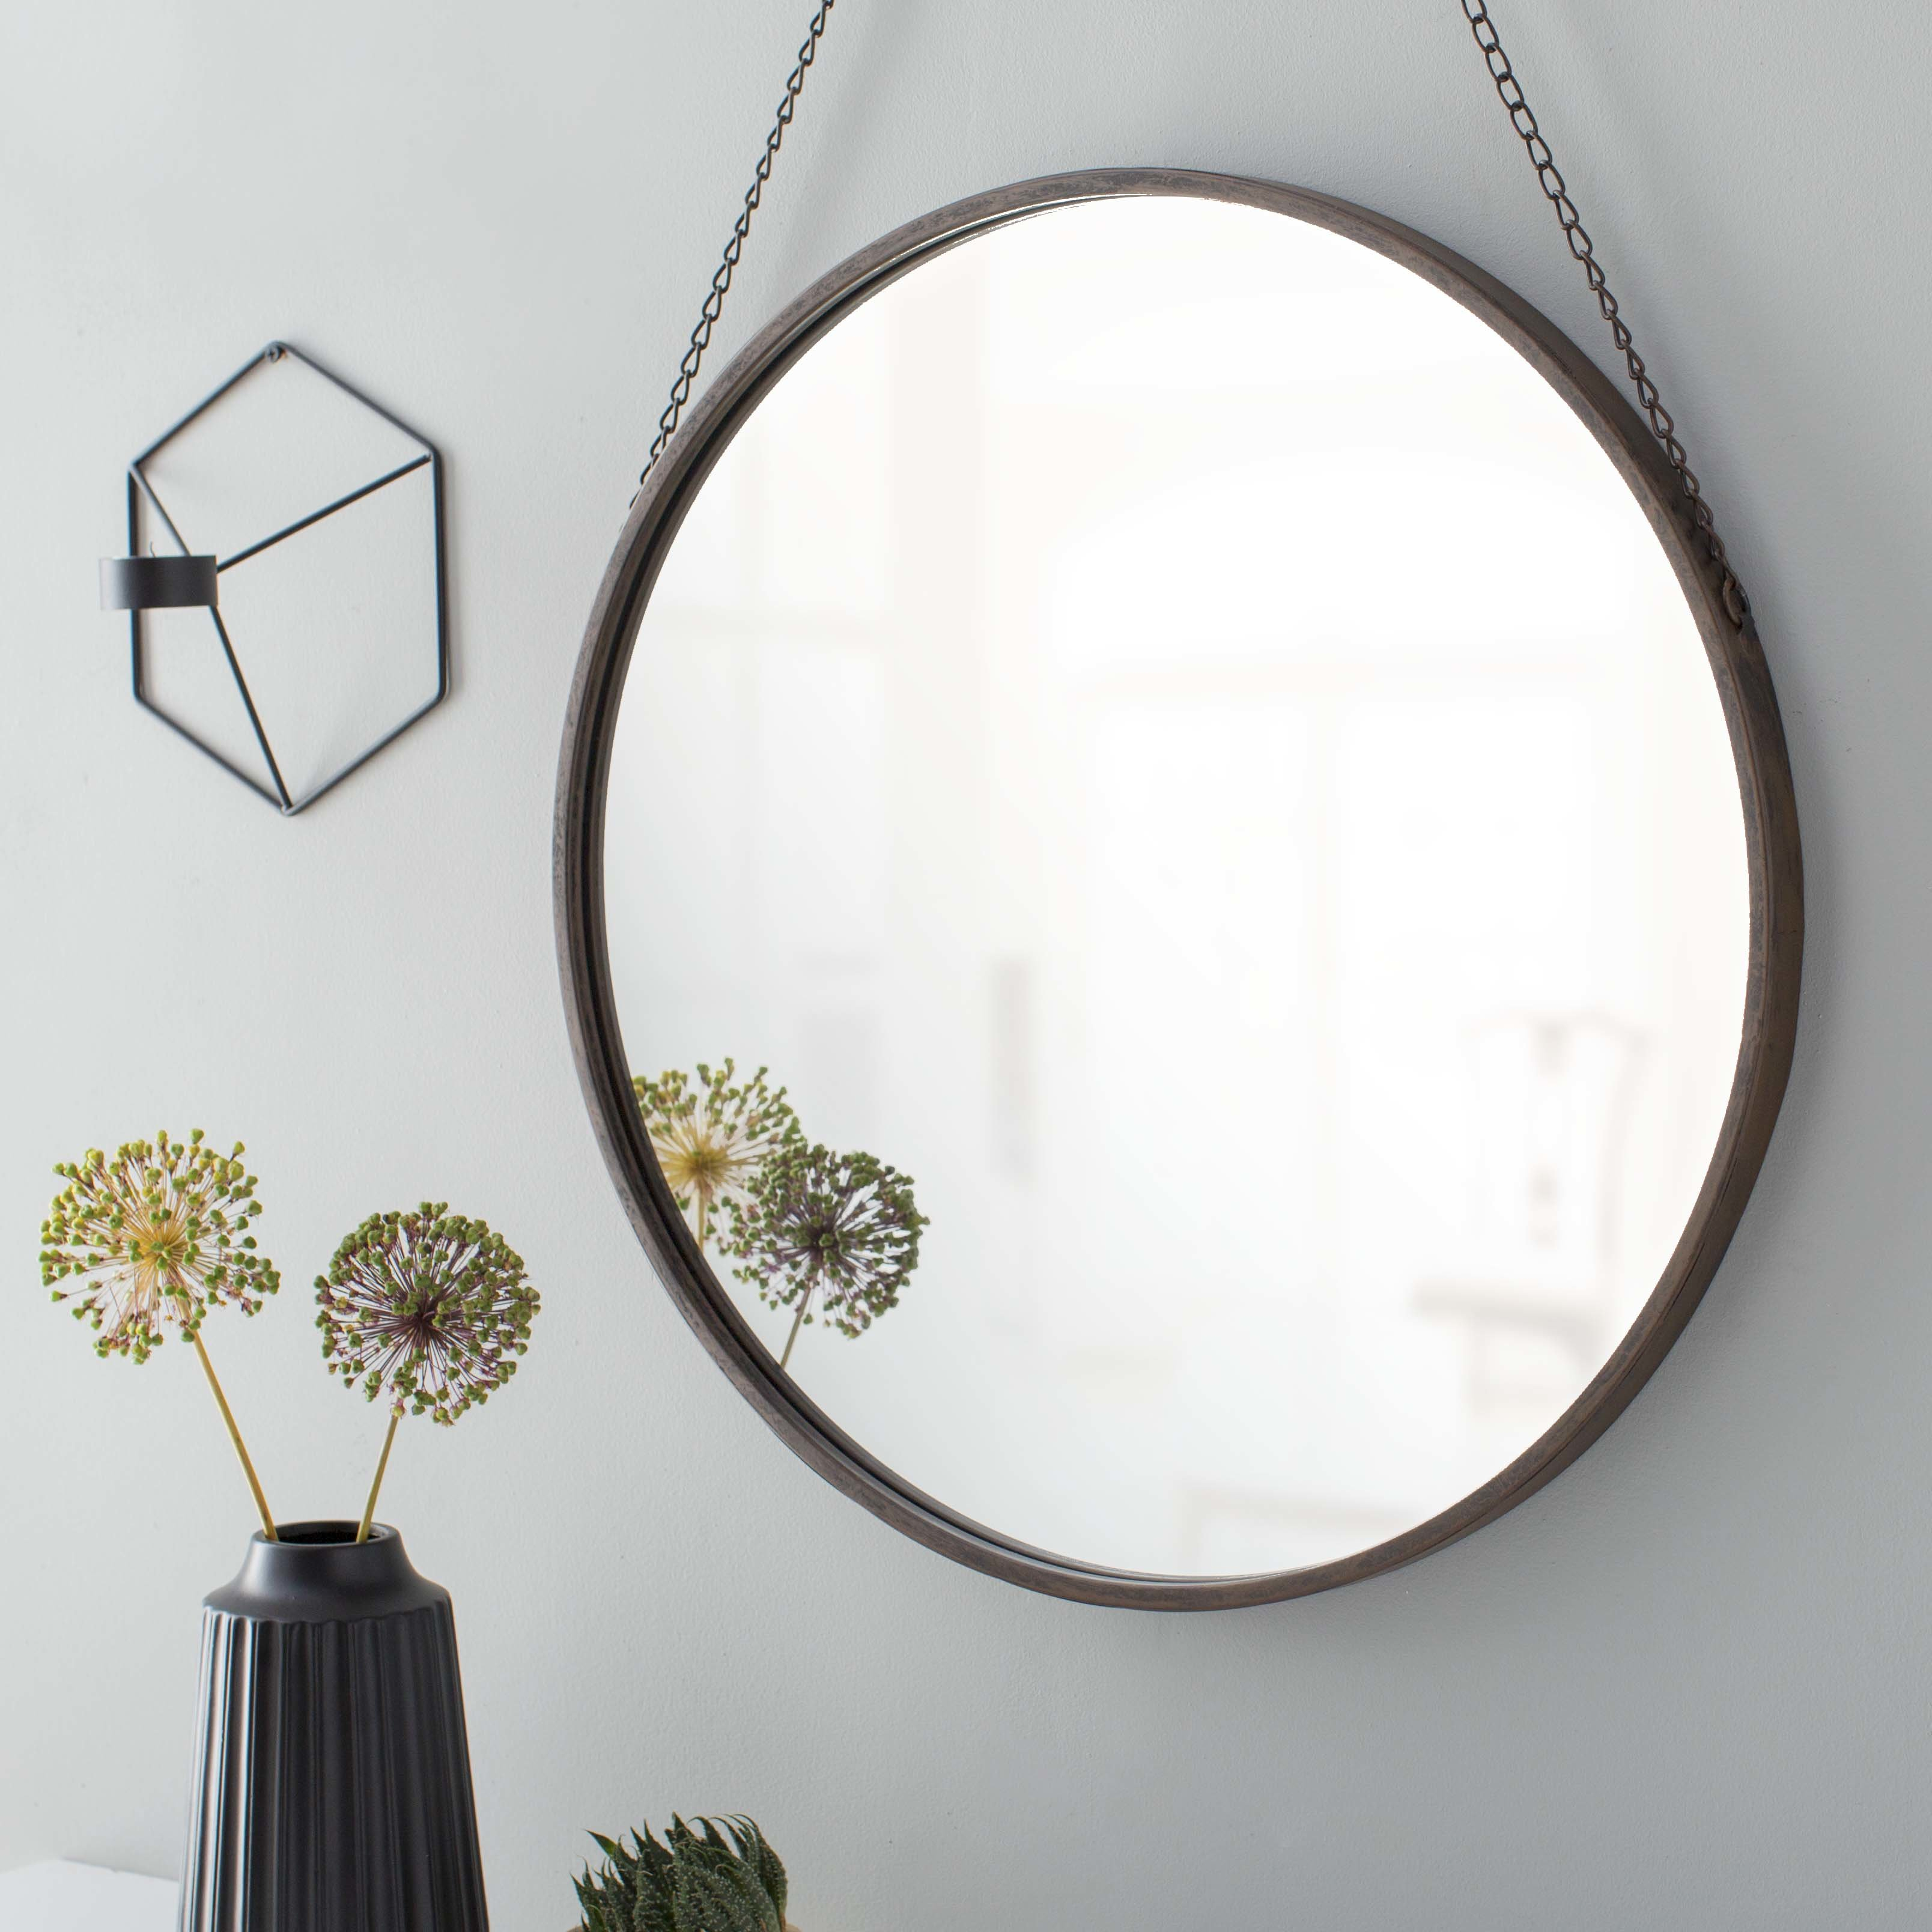 Hardison With Chain Hanger Accent Mirror With Swagger Accent Wall Mirrors (View 12 of 20)